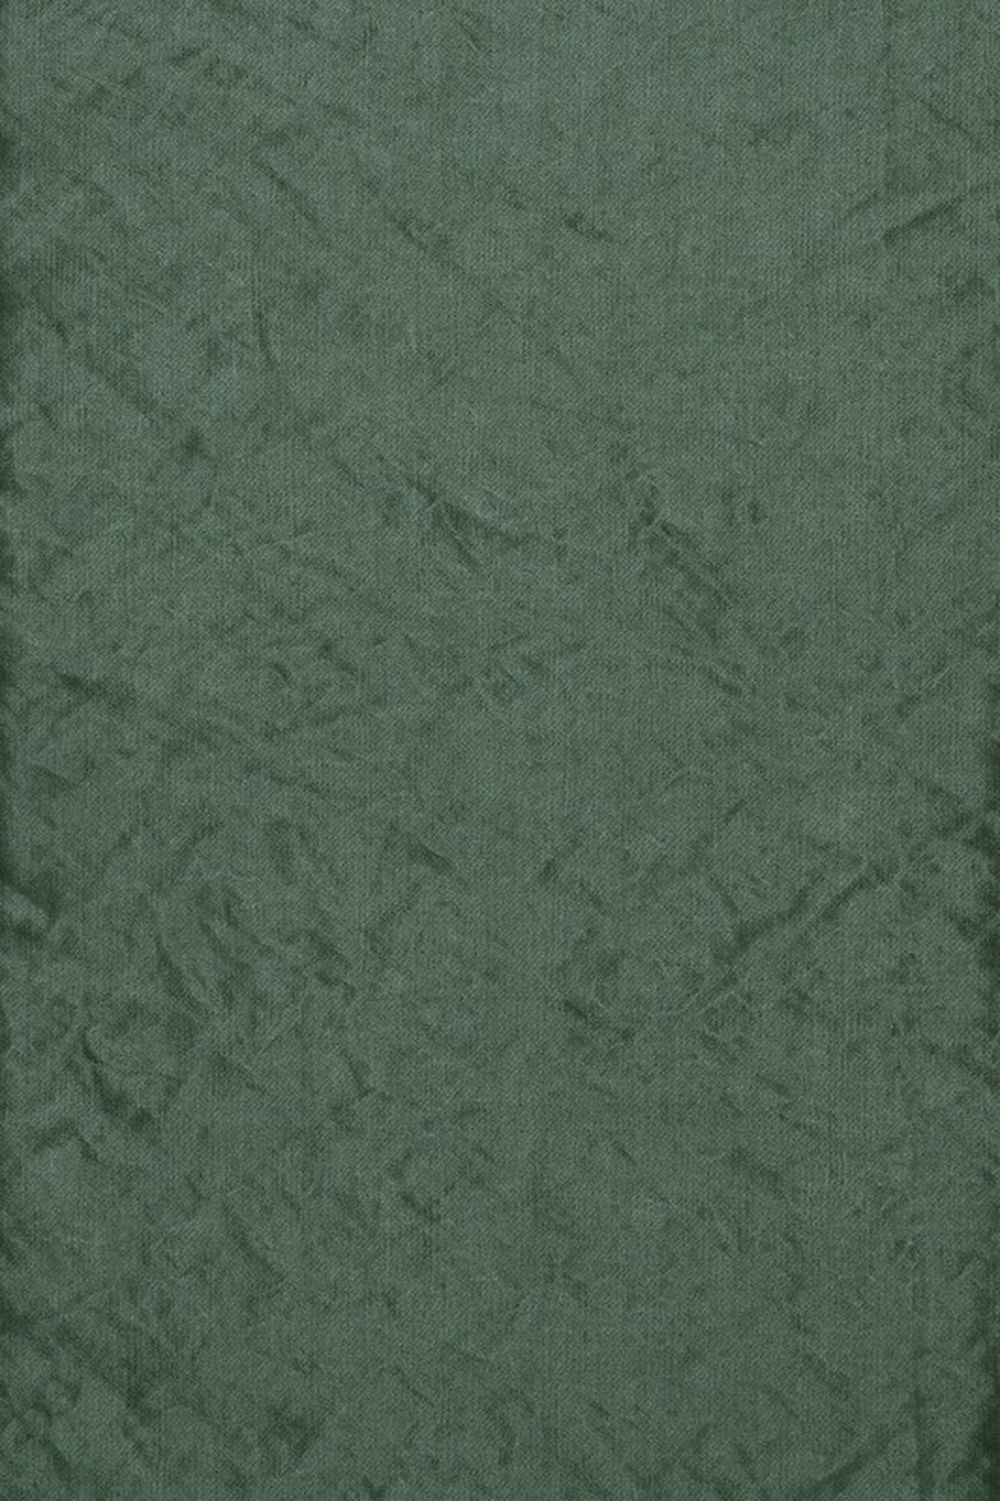 Photo of the fabric Couture * Atlantic swatch by Mokum. Use for Curtains, Accessory. Style of Plain